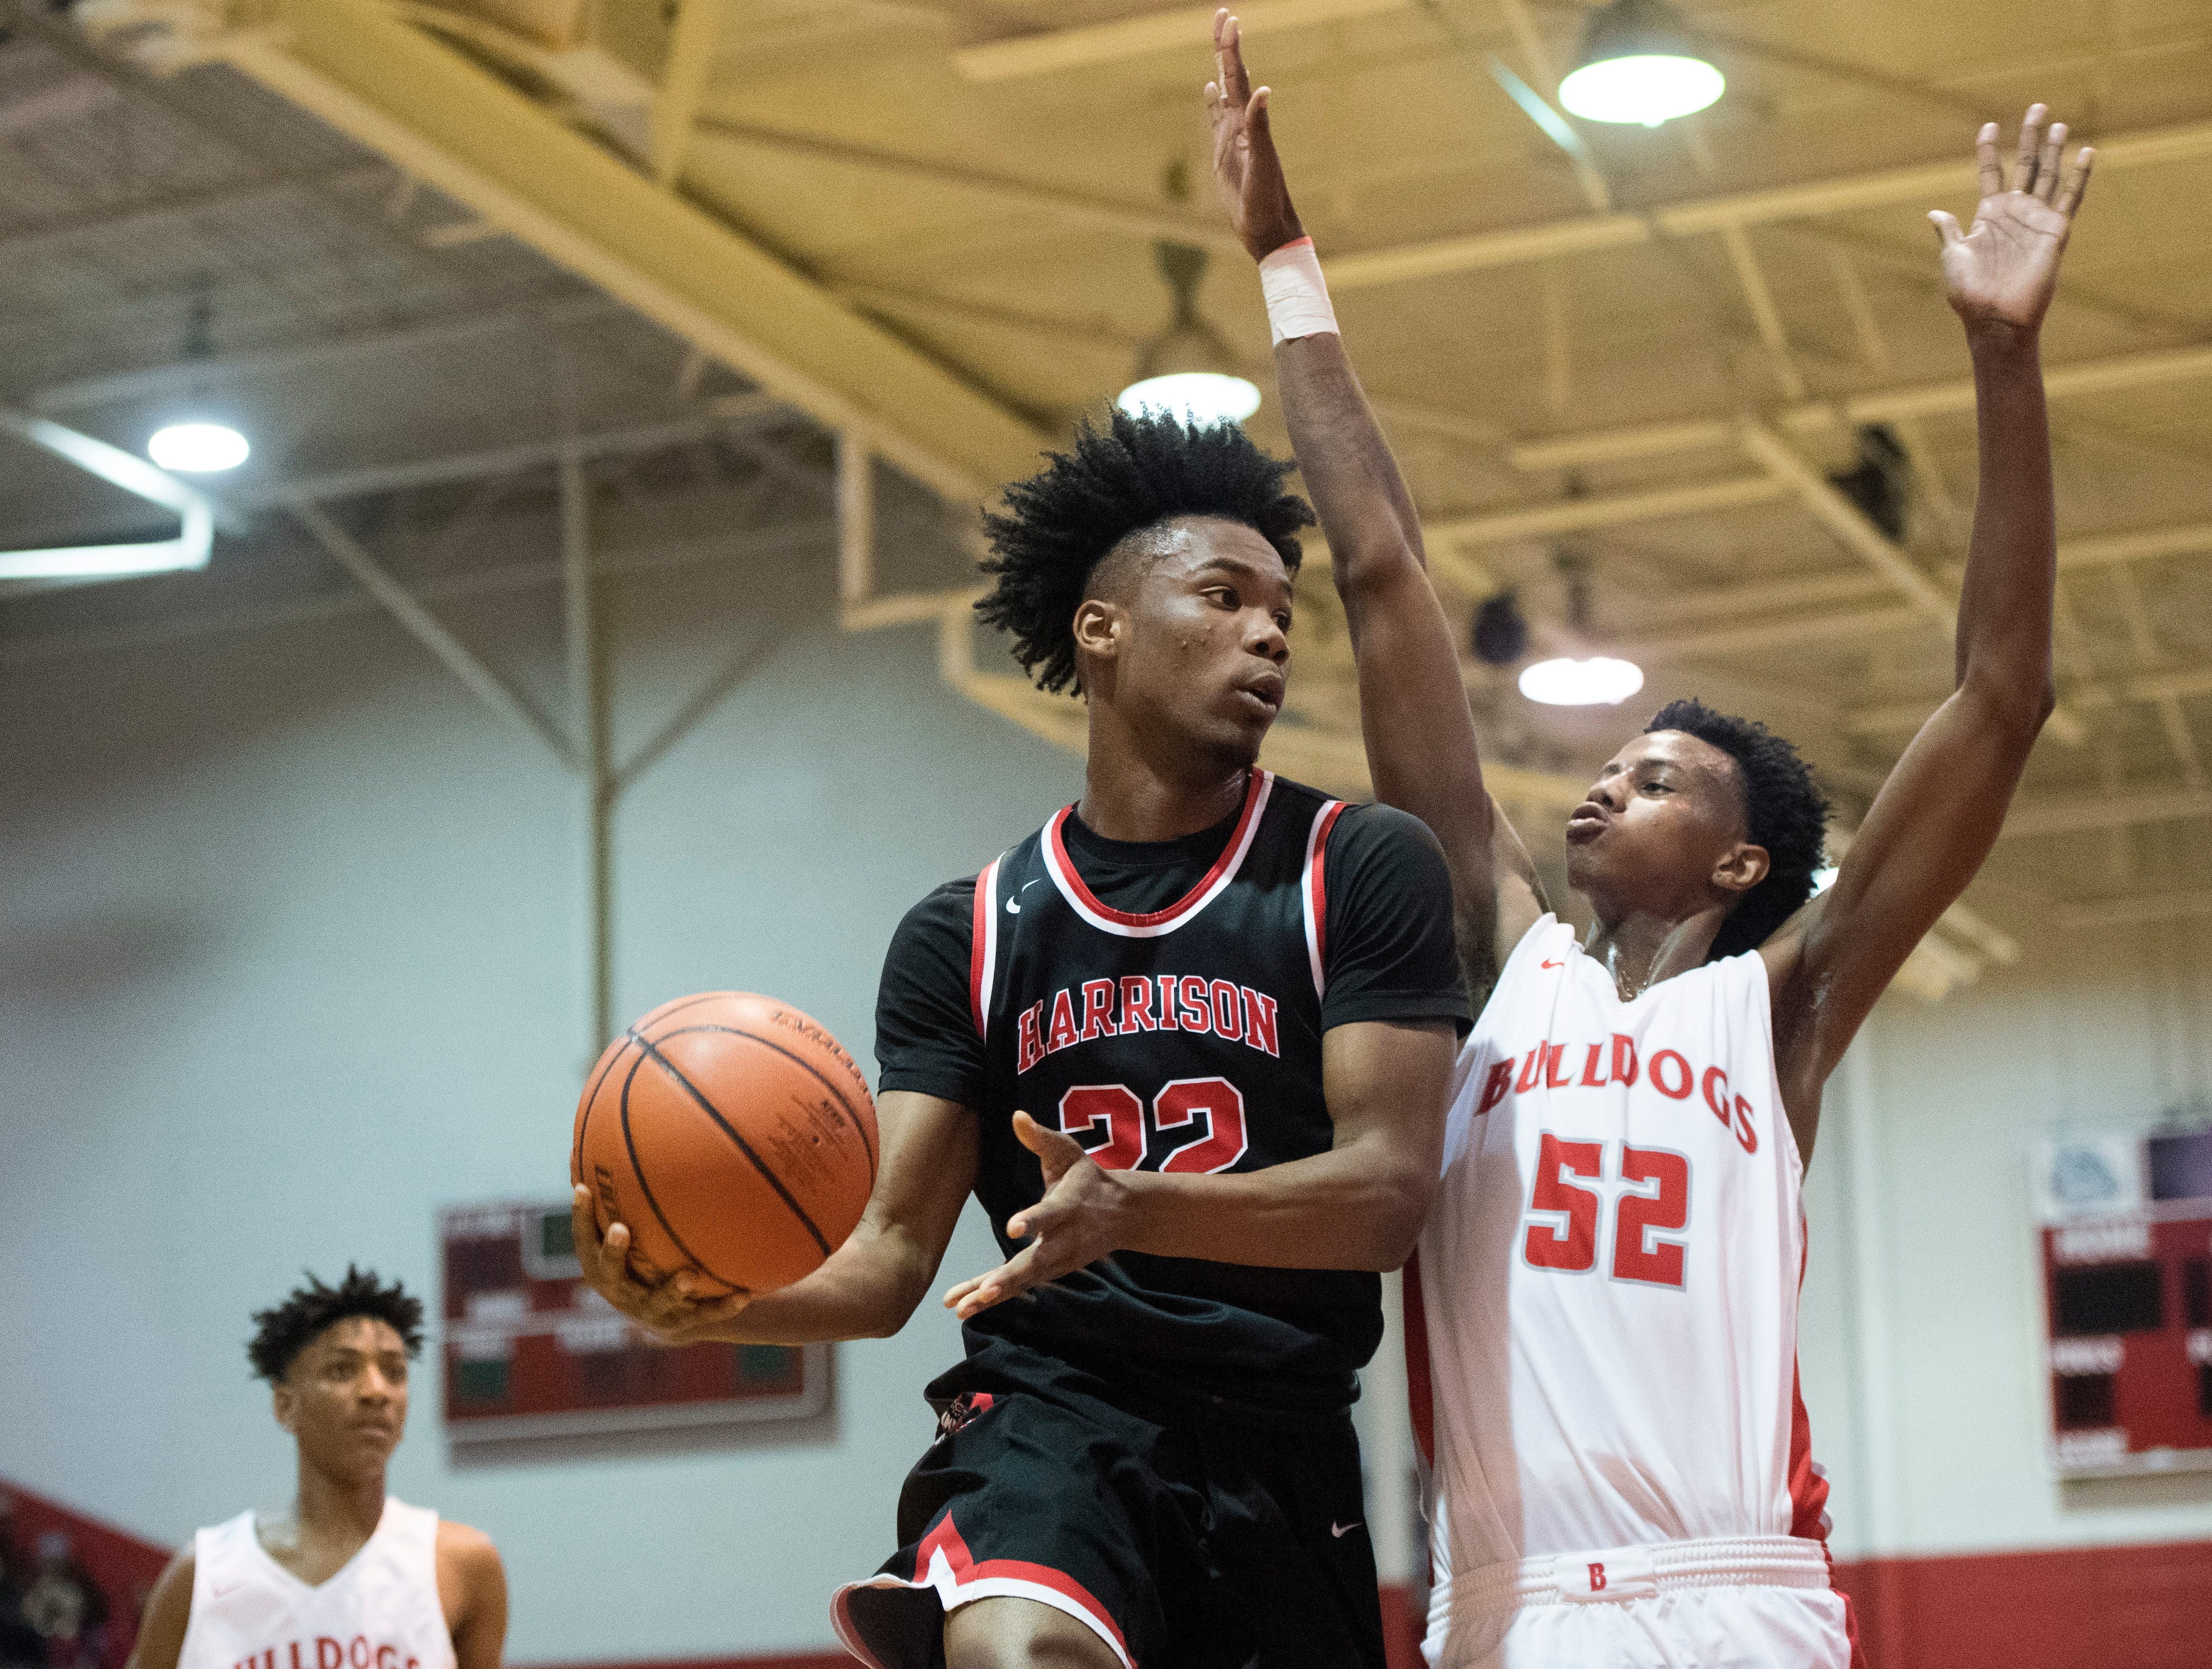 Harrison's Isaiah Edinburgh (22) is forced to pass the ball as he goes up to the basket during the Harrison vs Bosse game at Bosse High School Tuesday, Feb. 12, 2019. The Bosse Bulldogs won 74-56.